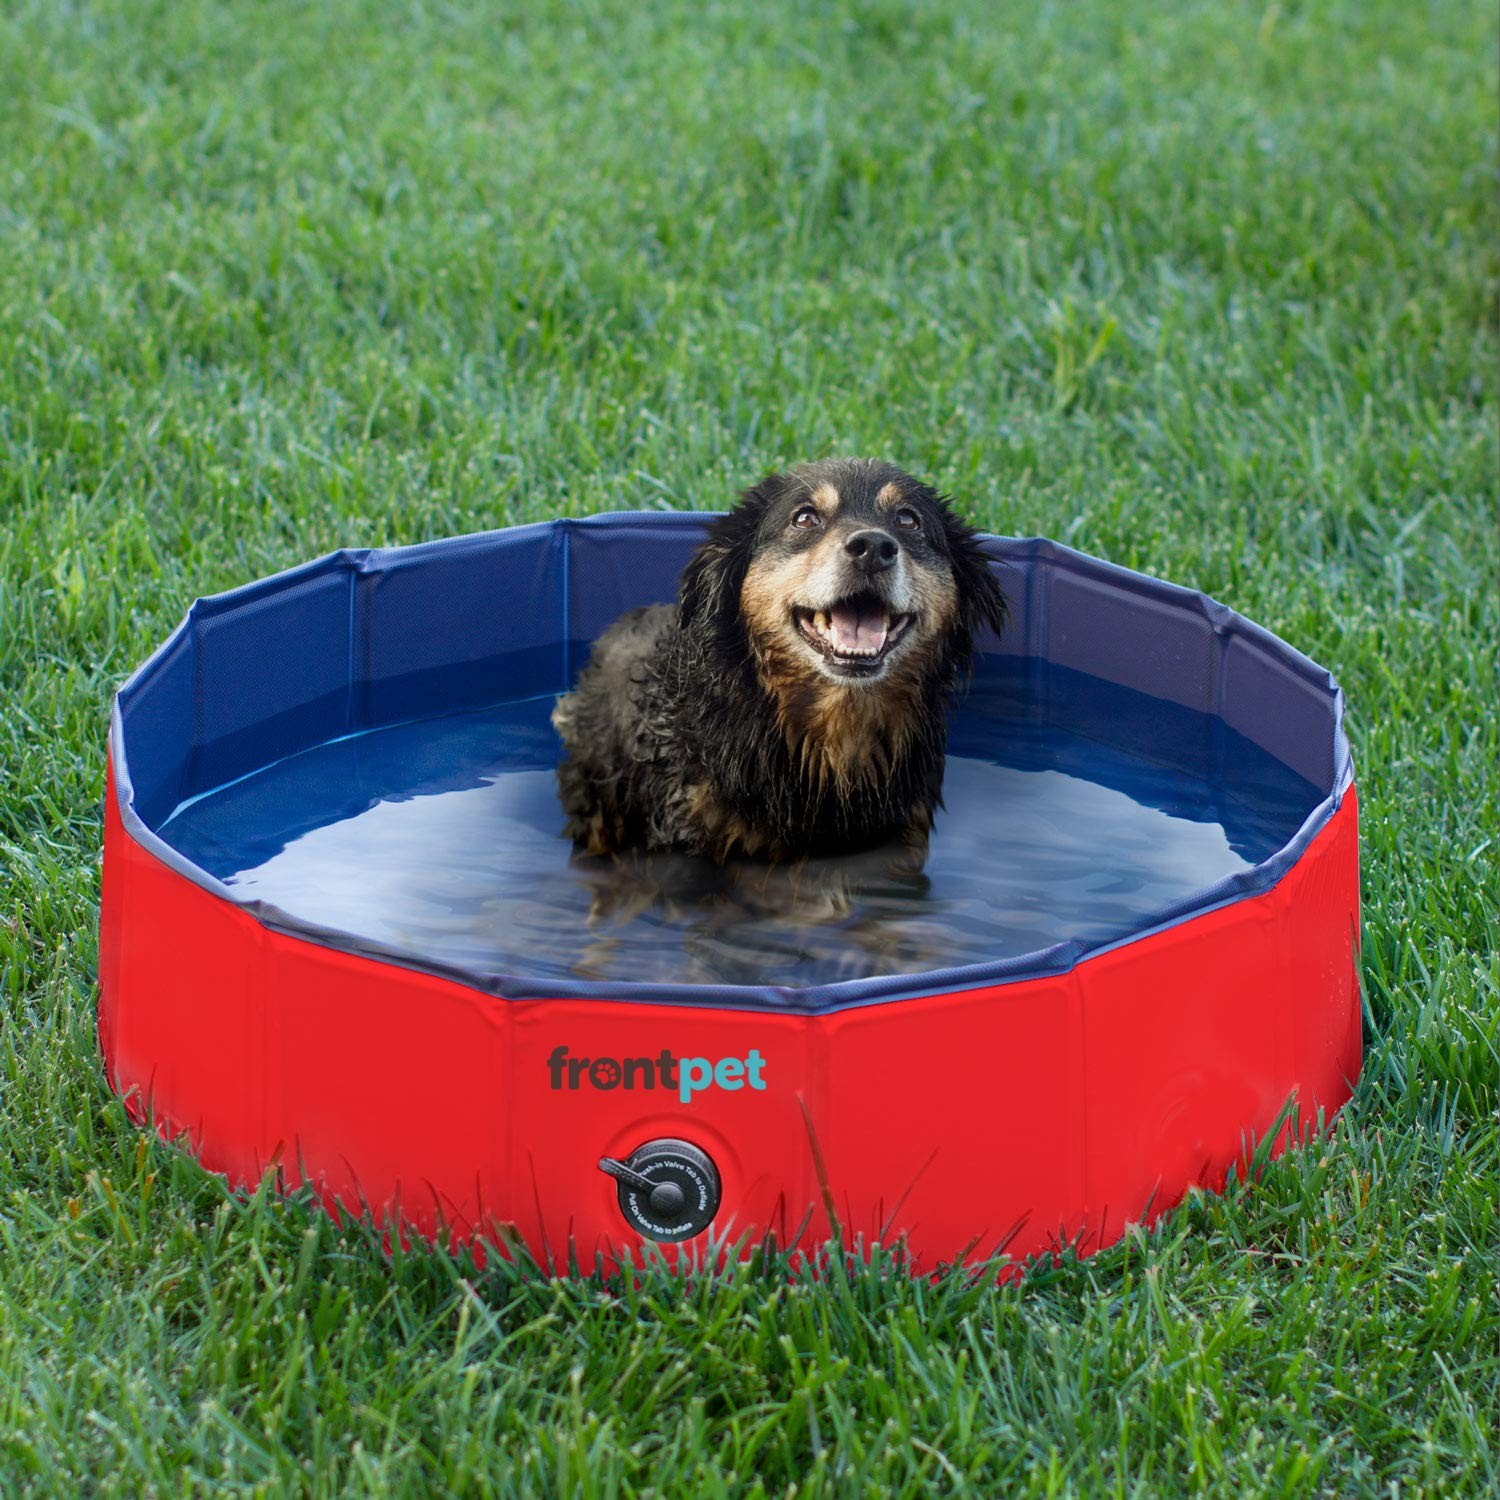 FrontPet Foldable Dog Pet Pool Bathing Tub (32 Inches X 11.8 Inches) by FrontPet